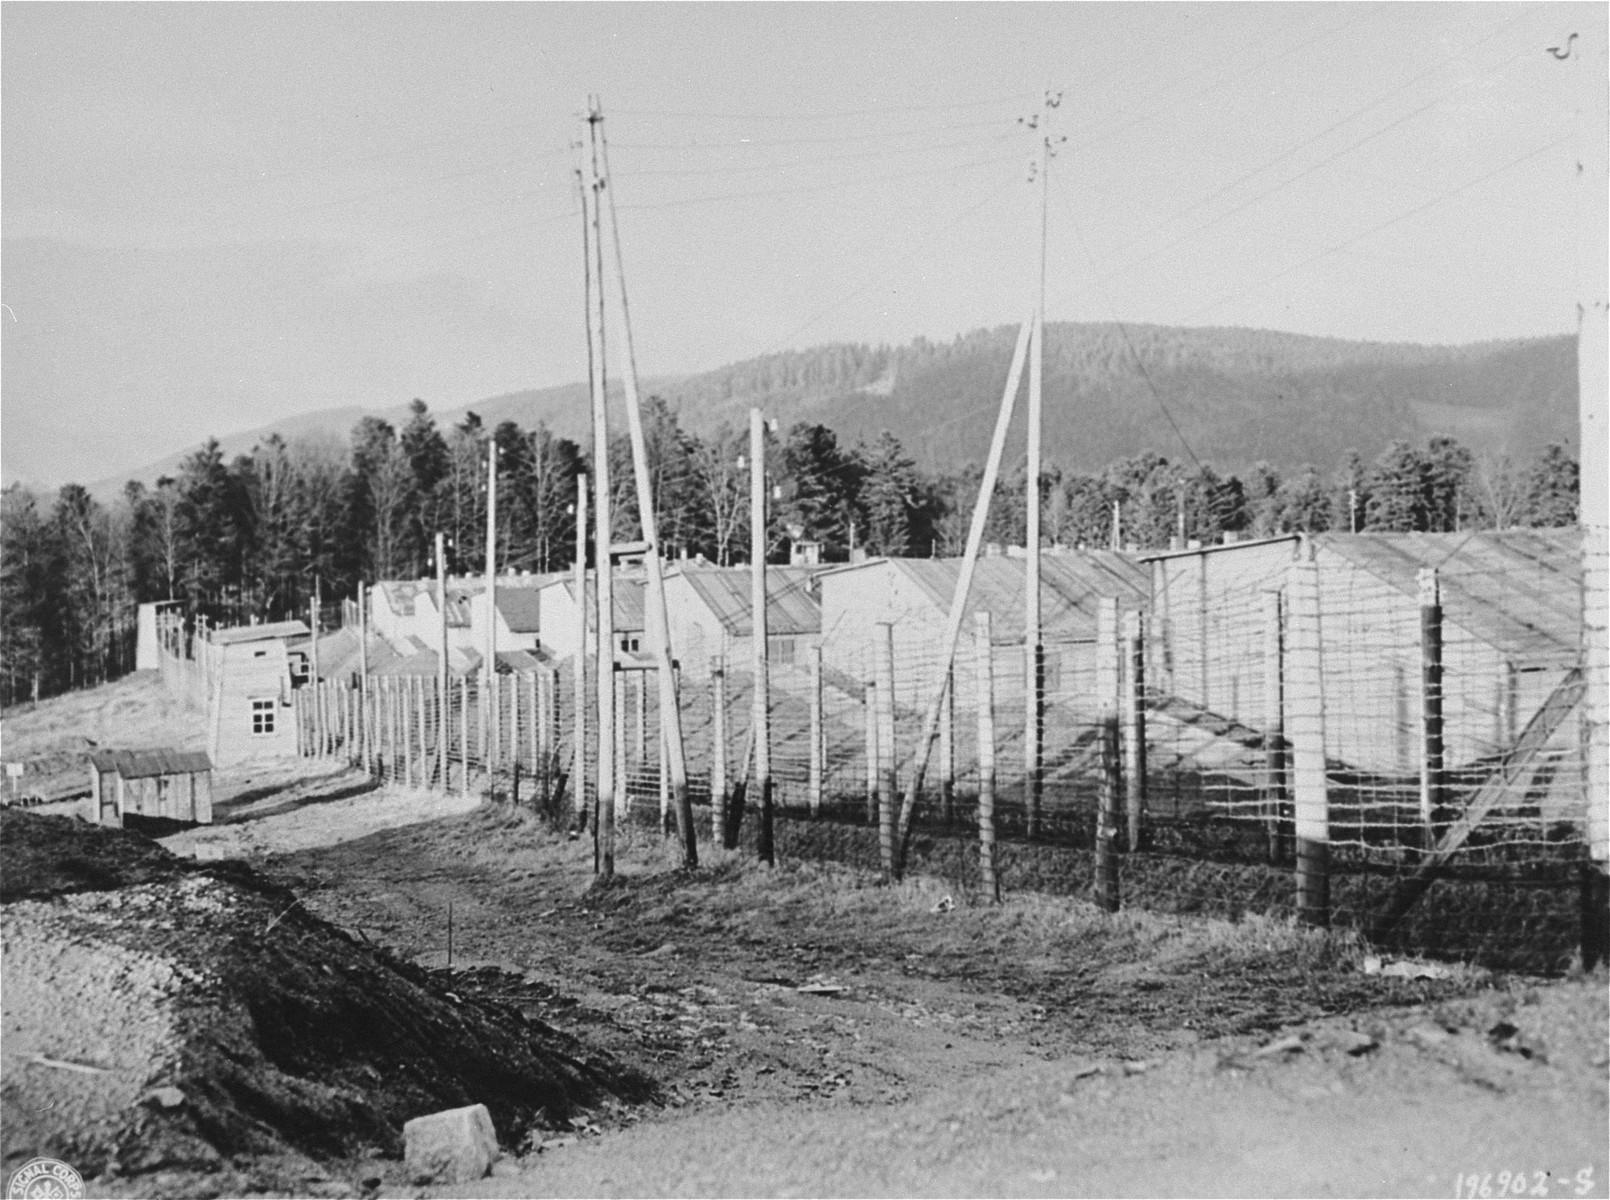 The Natzweiler-Struthof concentration camp.